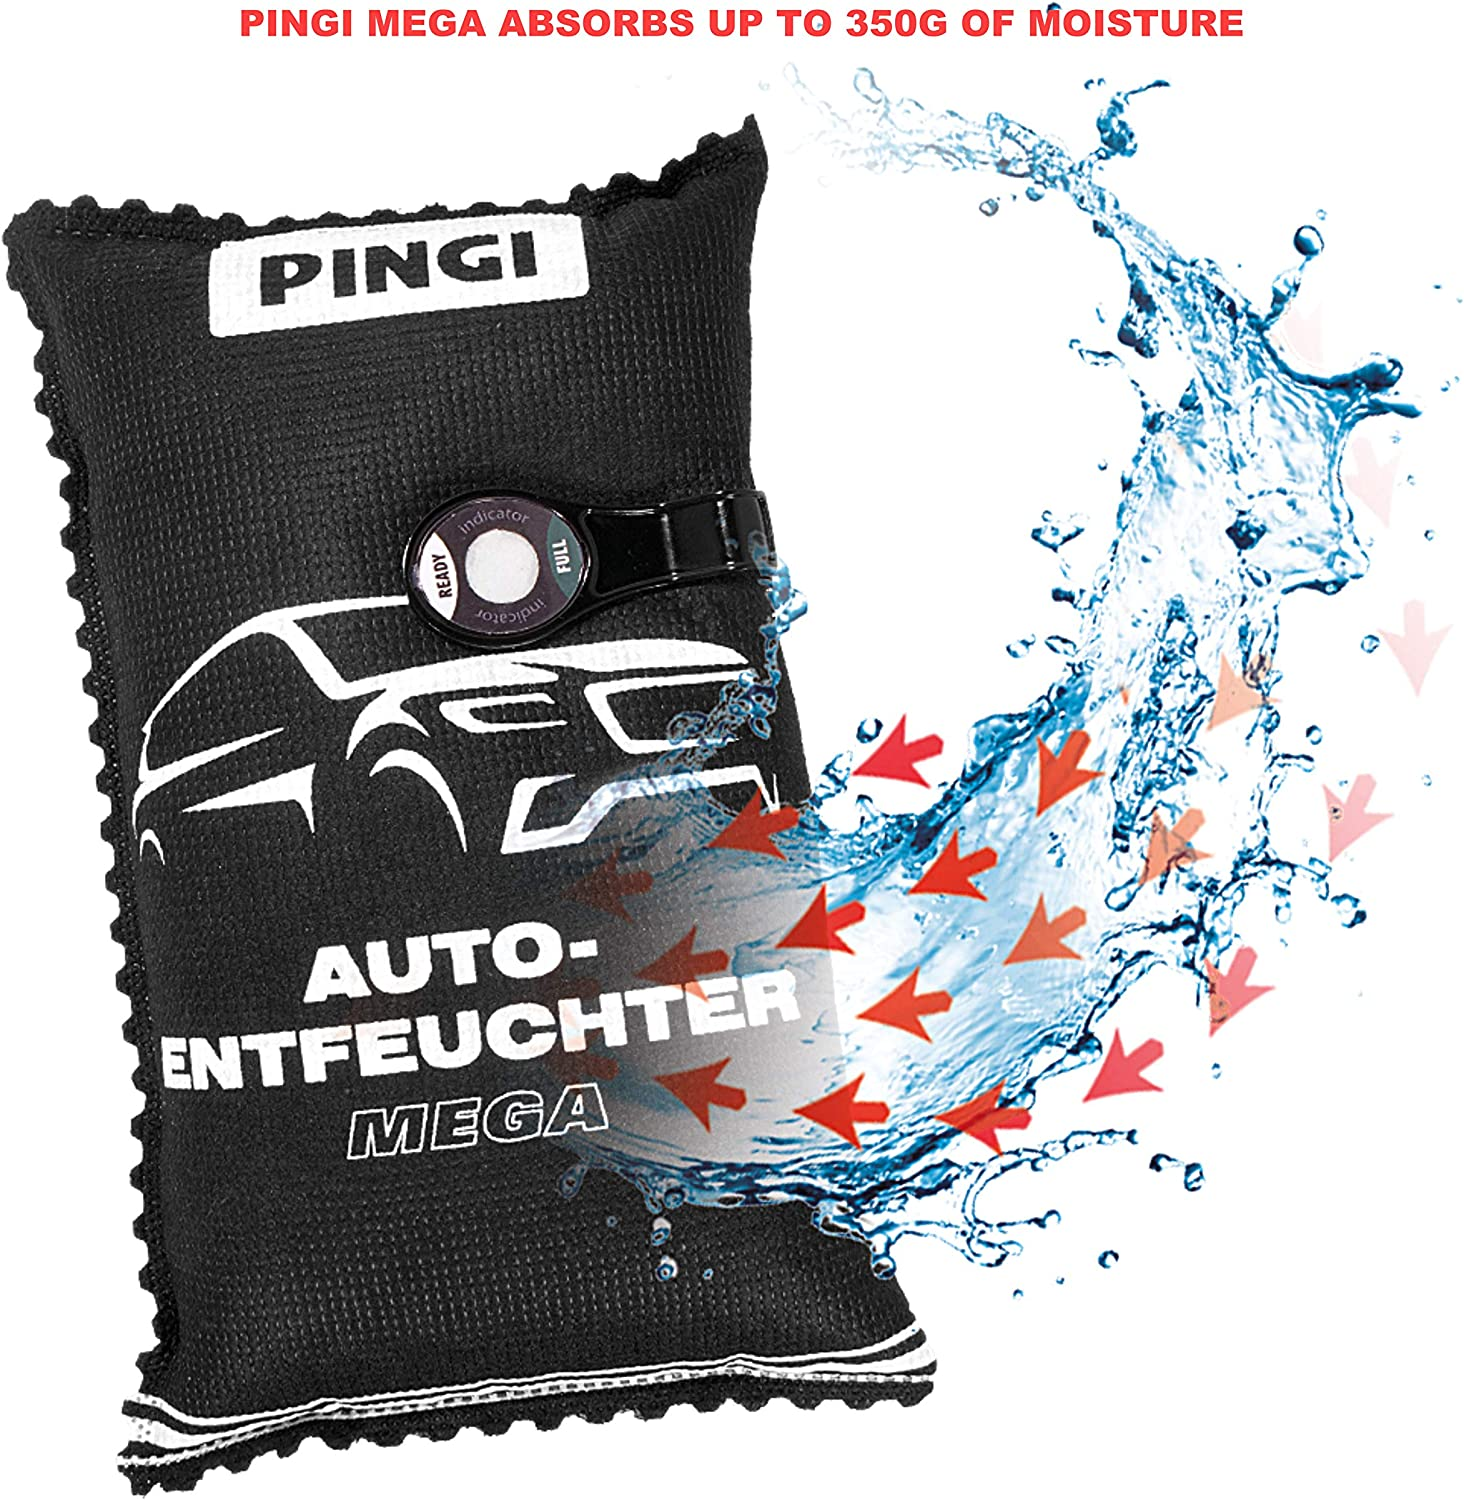 Reusable After 12 mins In Microwave For Car and Home 1000g Single Pack Pingi Mega Dehumidifier ASB-1000